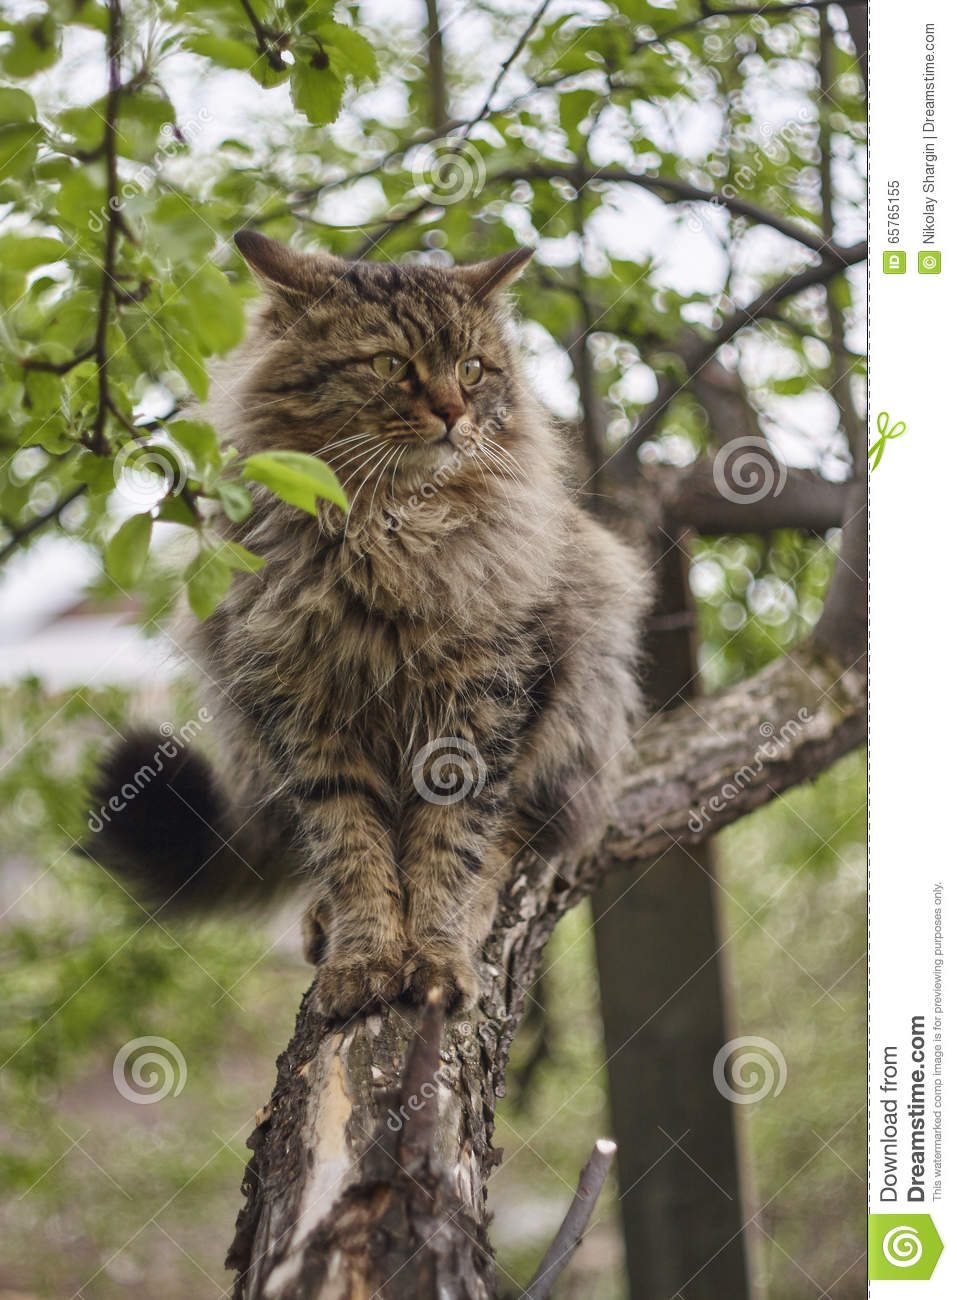 angry siberian cat cat on apple tree close up brown cat stock image image of background. Black Bedroom Furniture Sets. Home Design Ideas